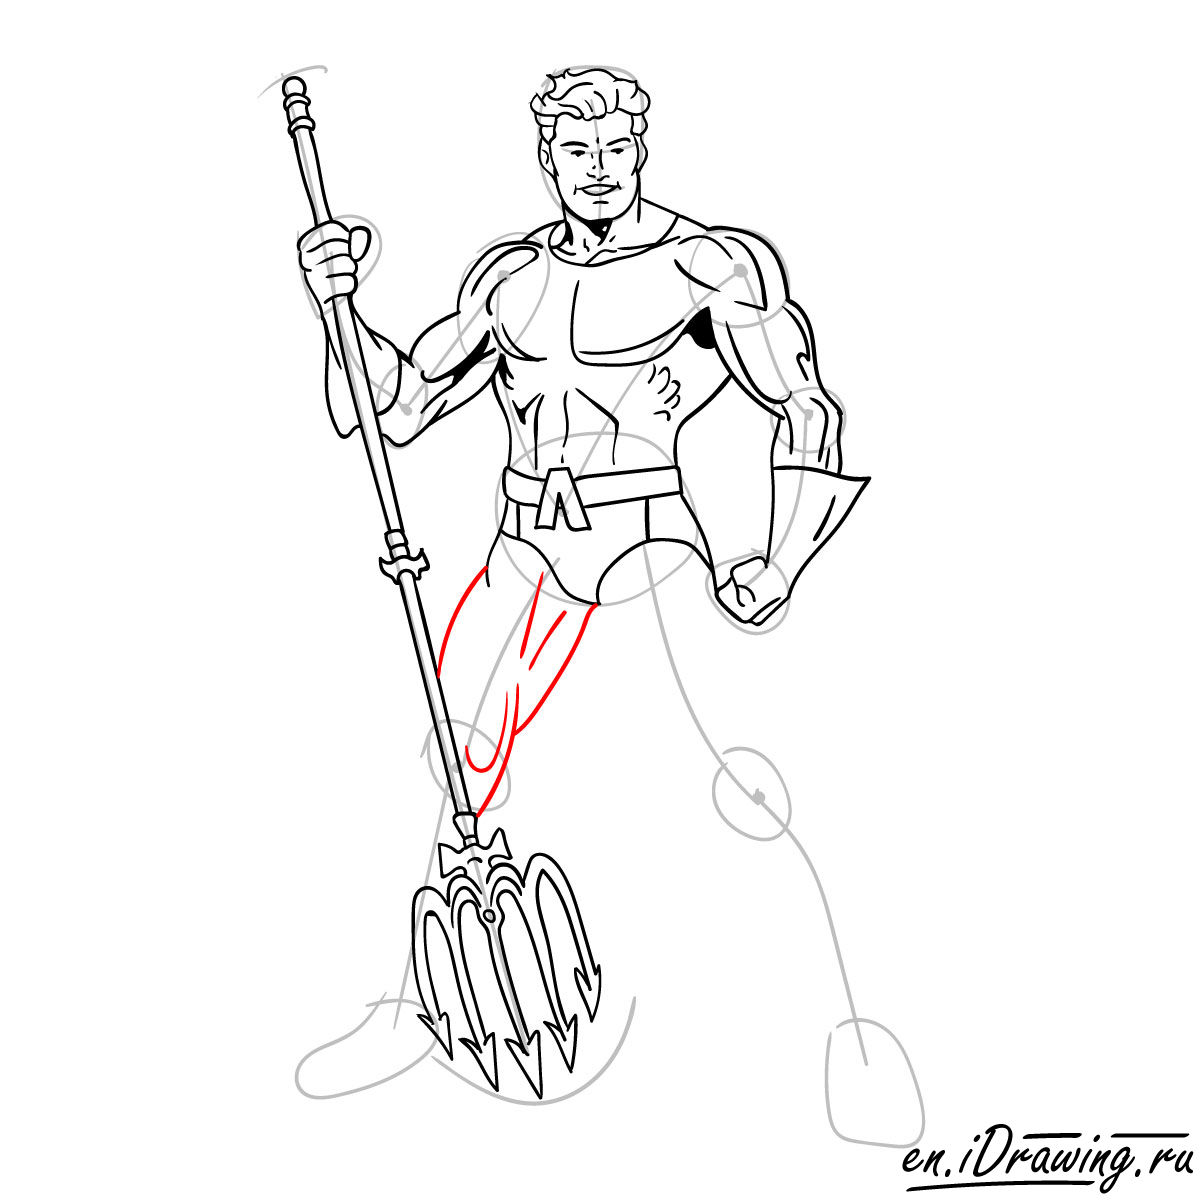 How to draw Aquaman from cartoons and comic books - step 14